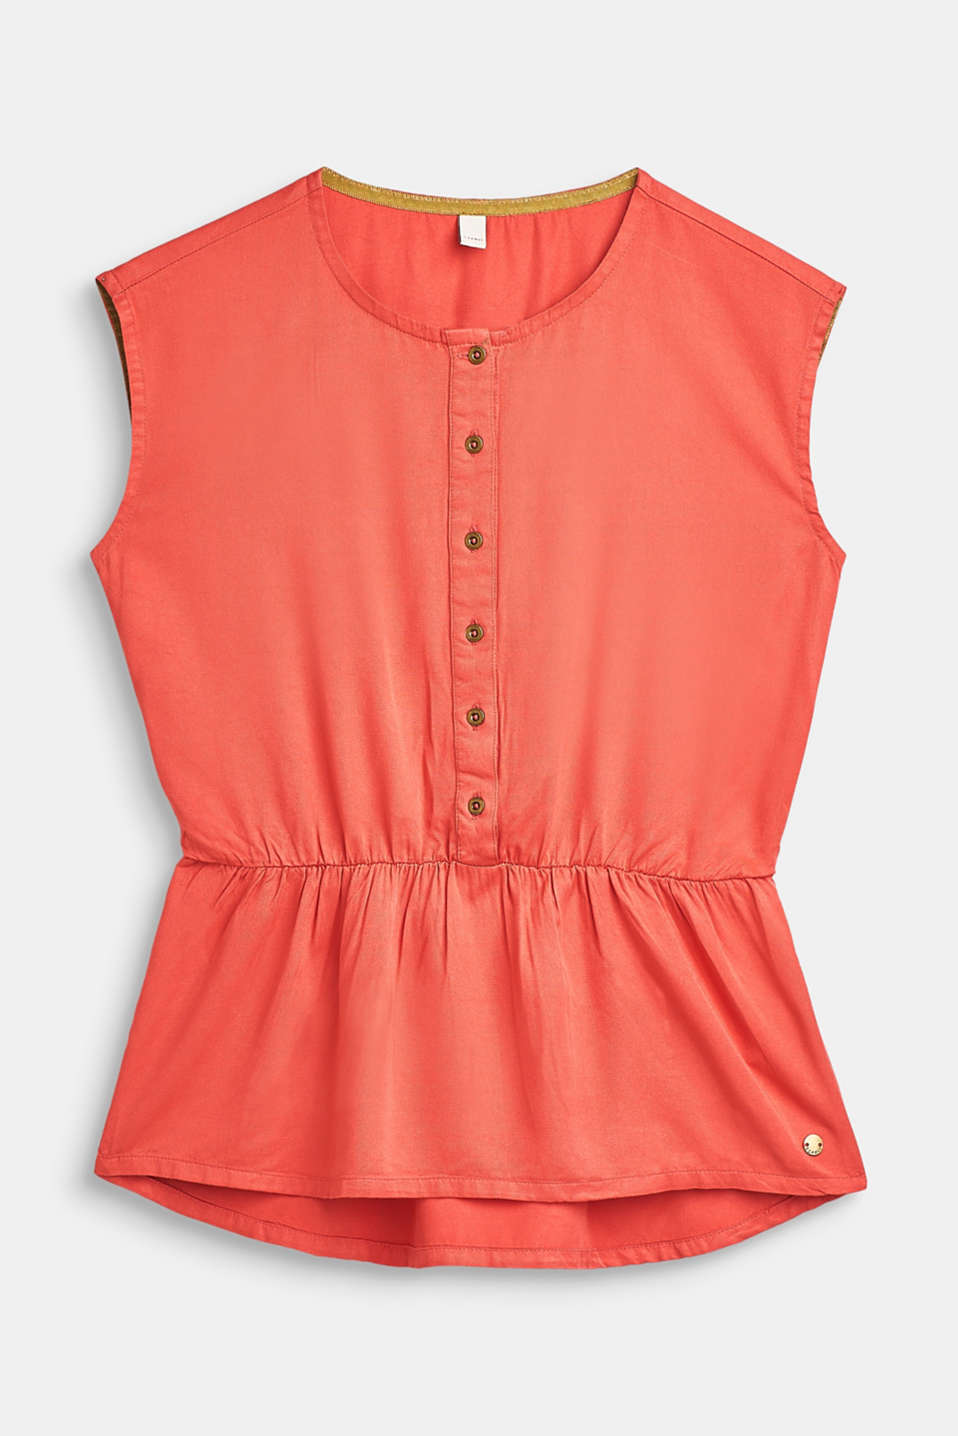 Esprit - Flowing blouse top with a peplum